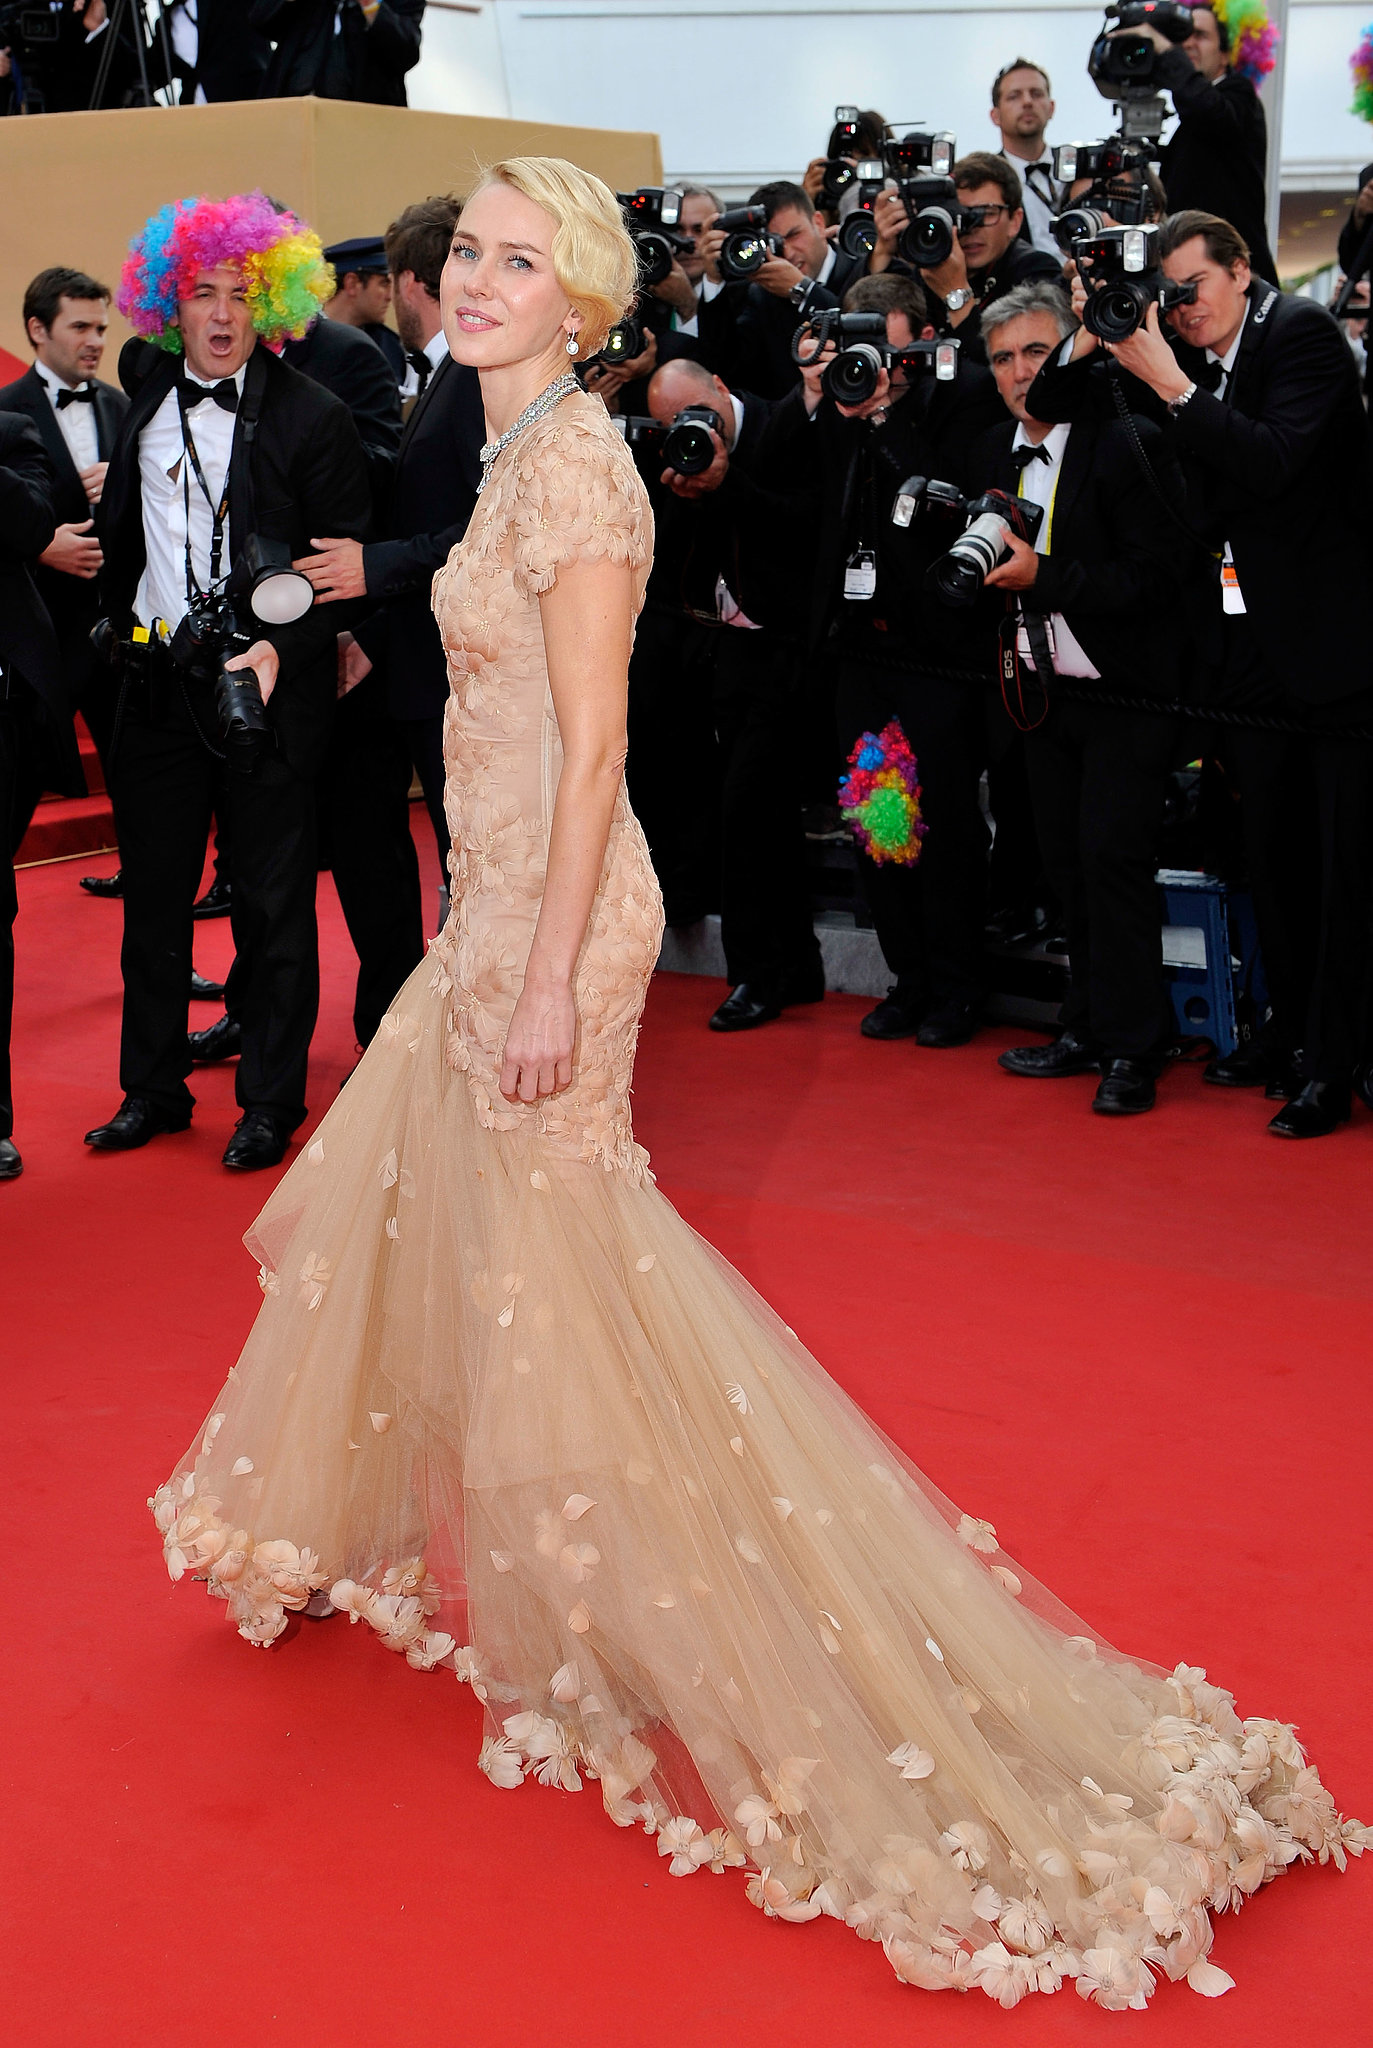 At the Cannes Film Festival in 2012, Naomi Watts walked down the red carpet in a beige frock.